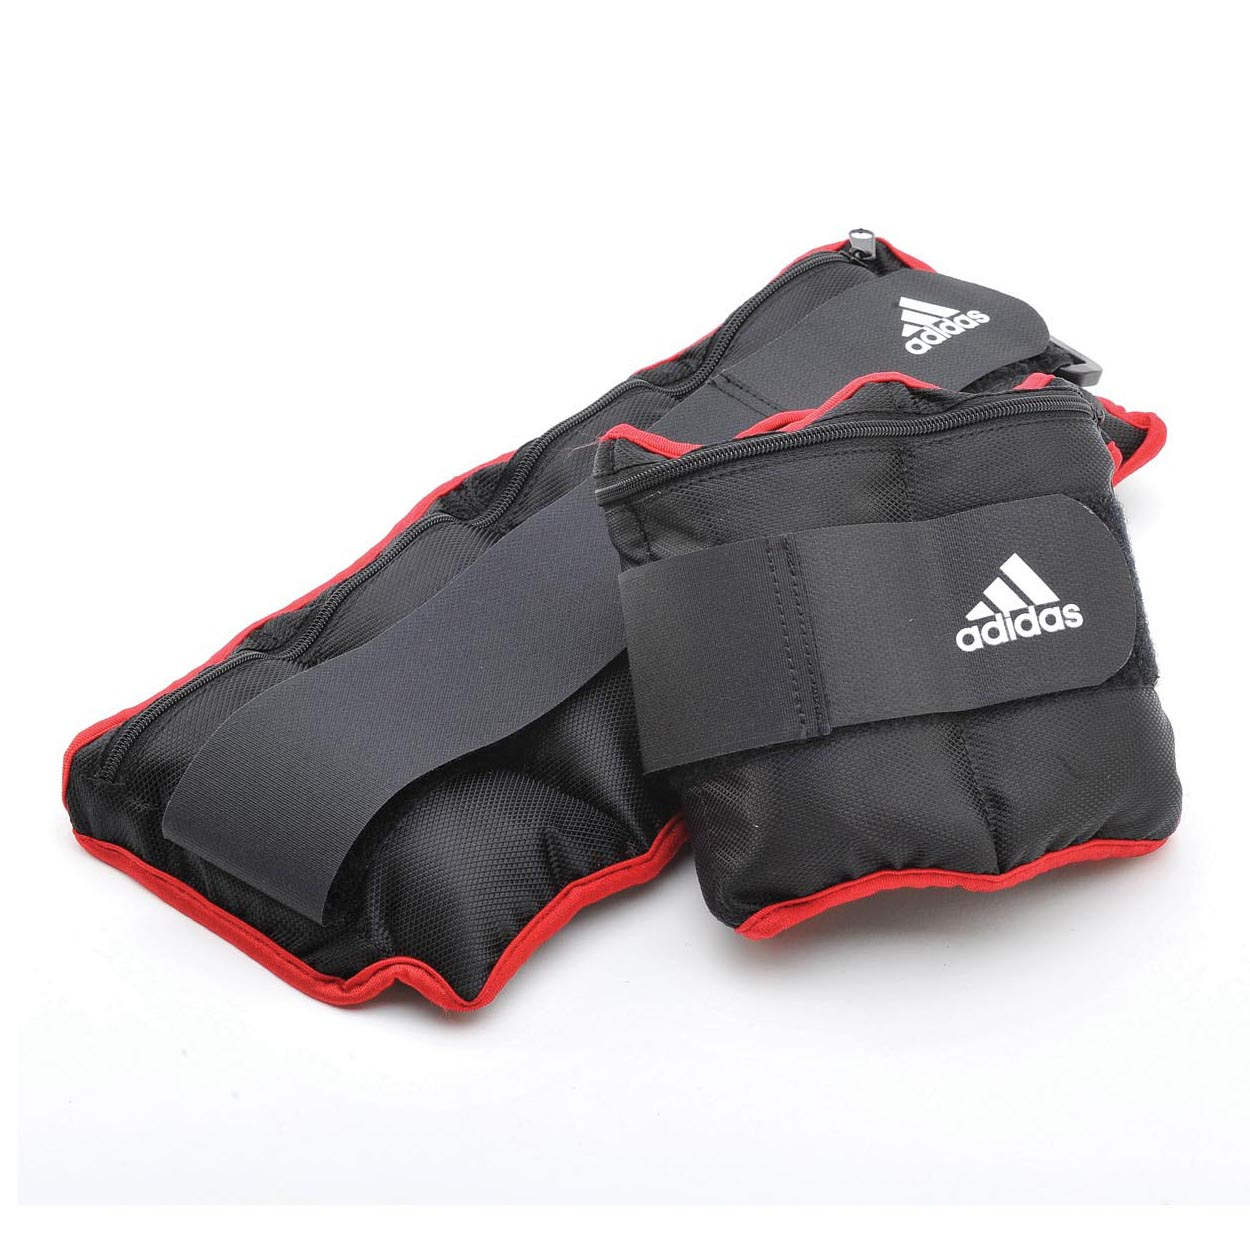 Adidas Adjustable Ankle Weights  2 x 2kg